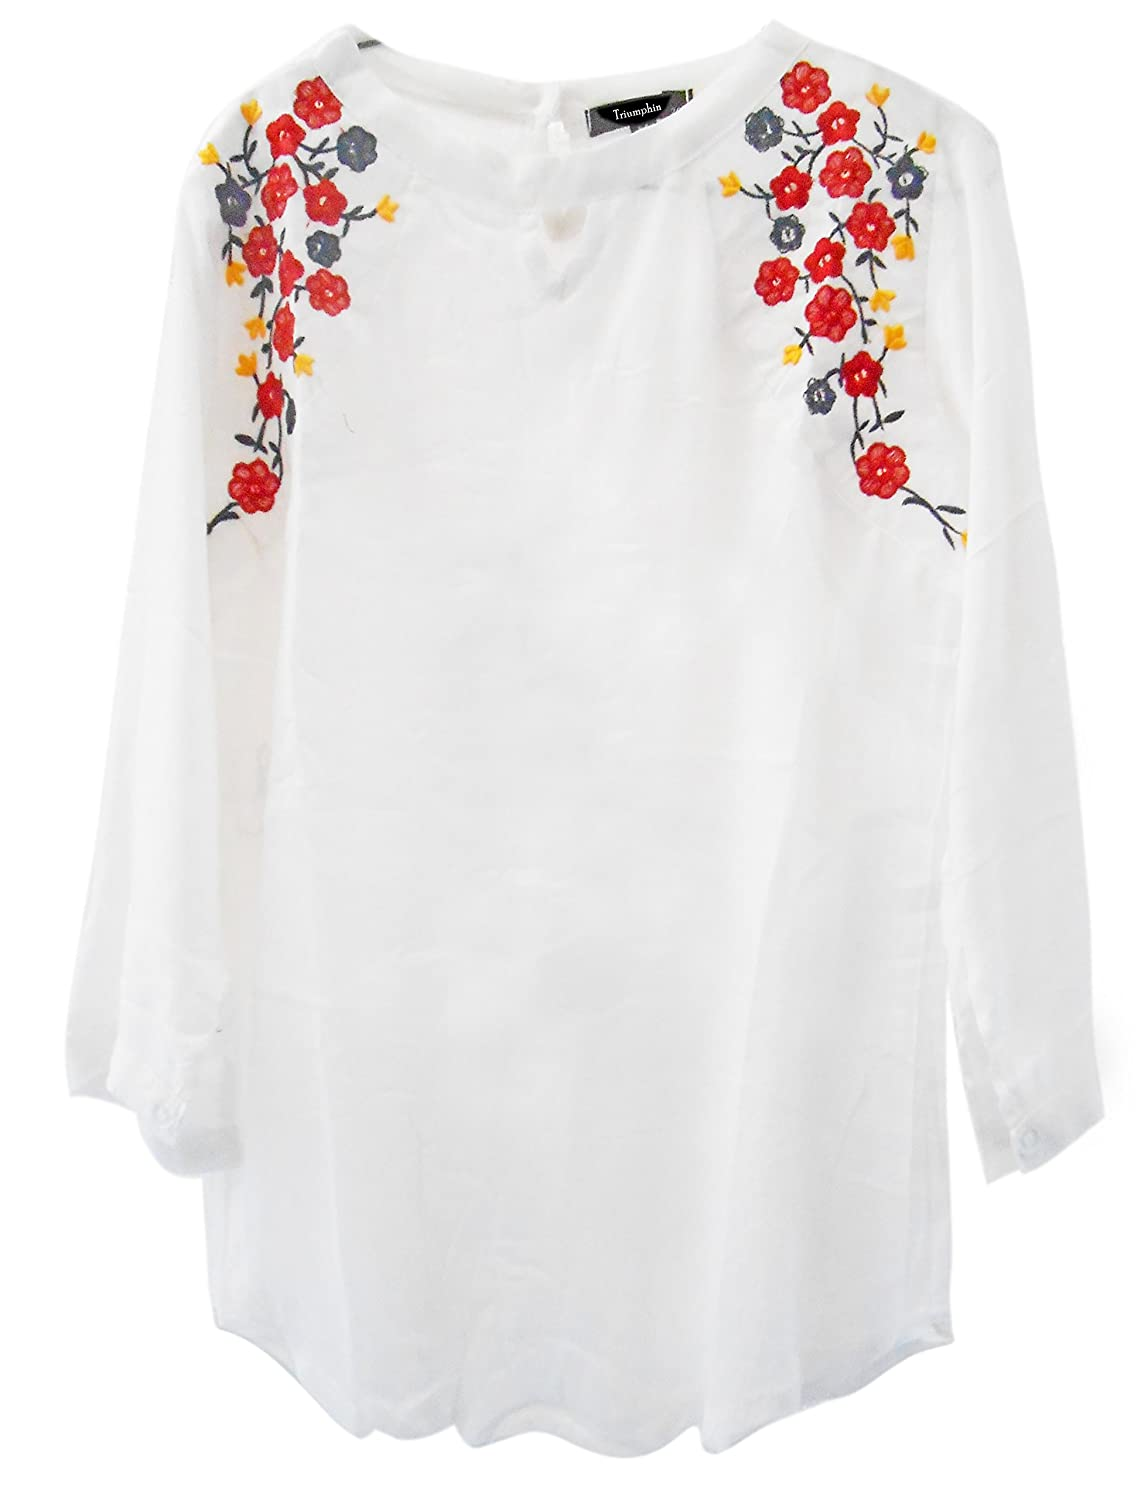 Triumphin White Women Short Top Kurti For Jeans Embroidered Cotton Top For Daily wear Stylish Casual and Western Wear Women / Girls Top